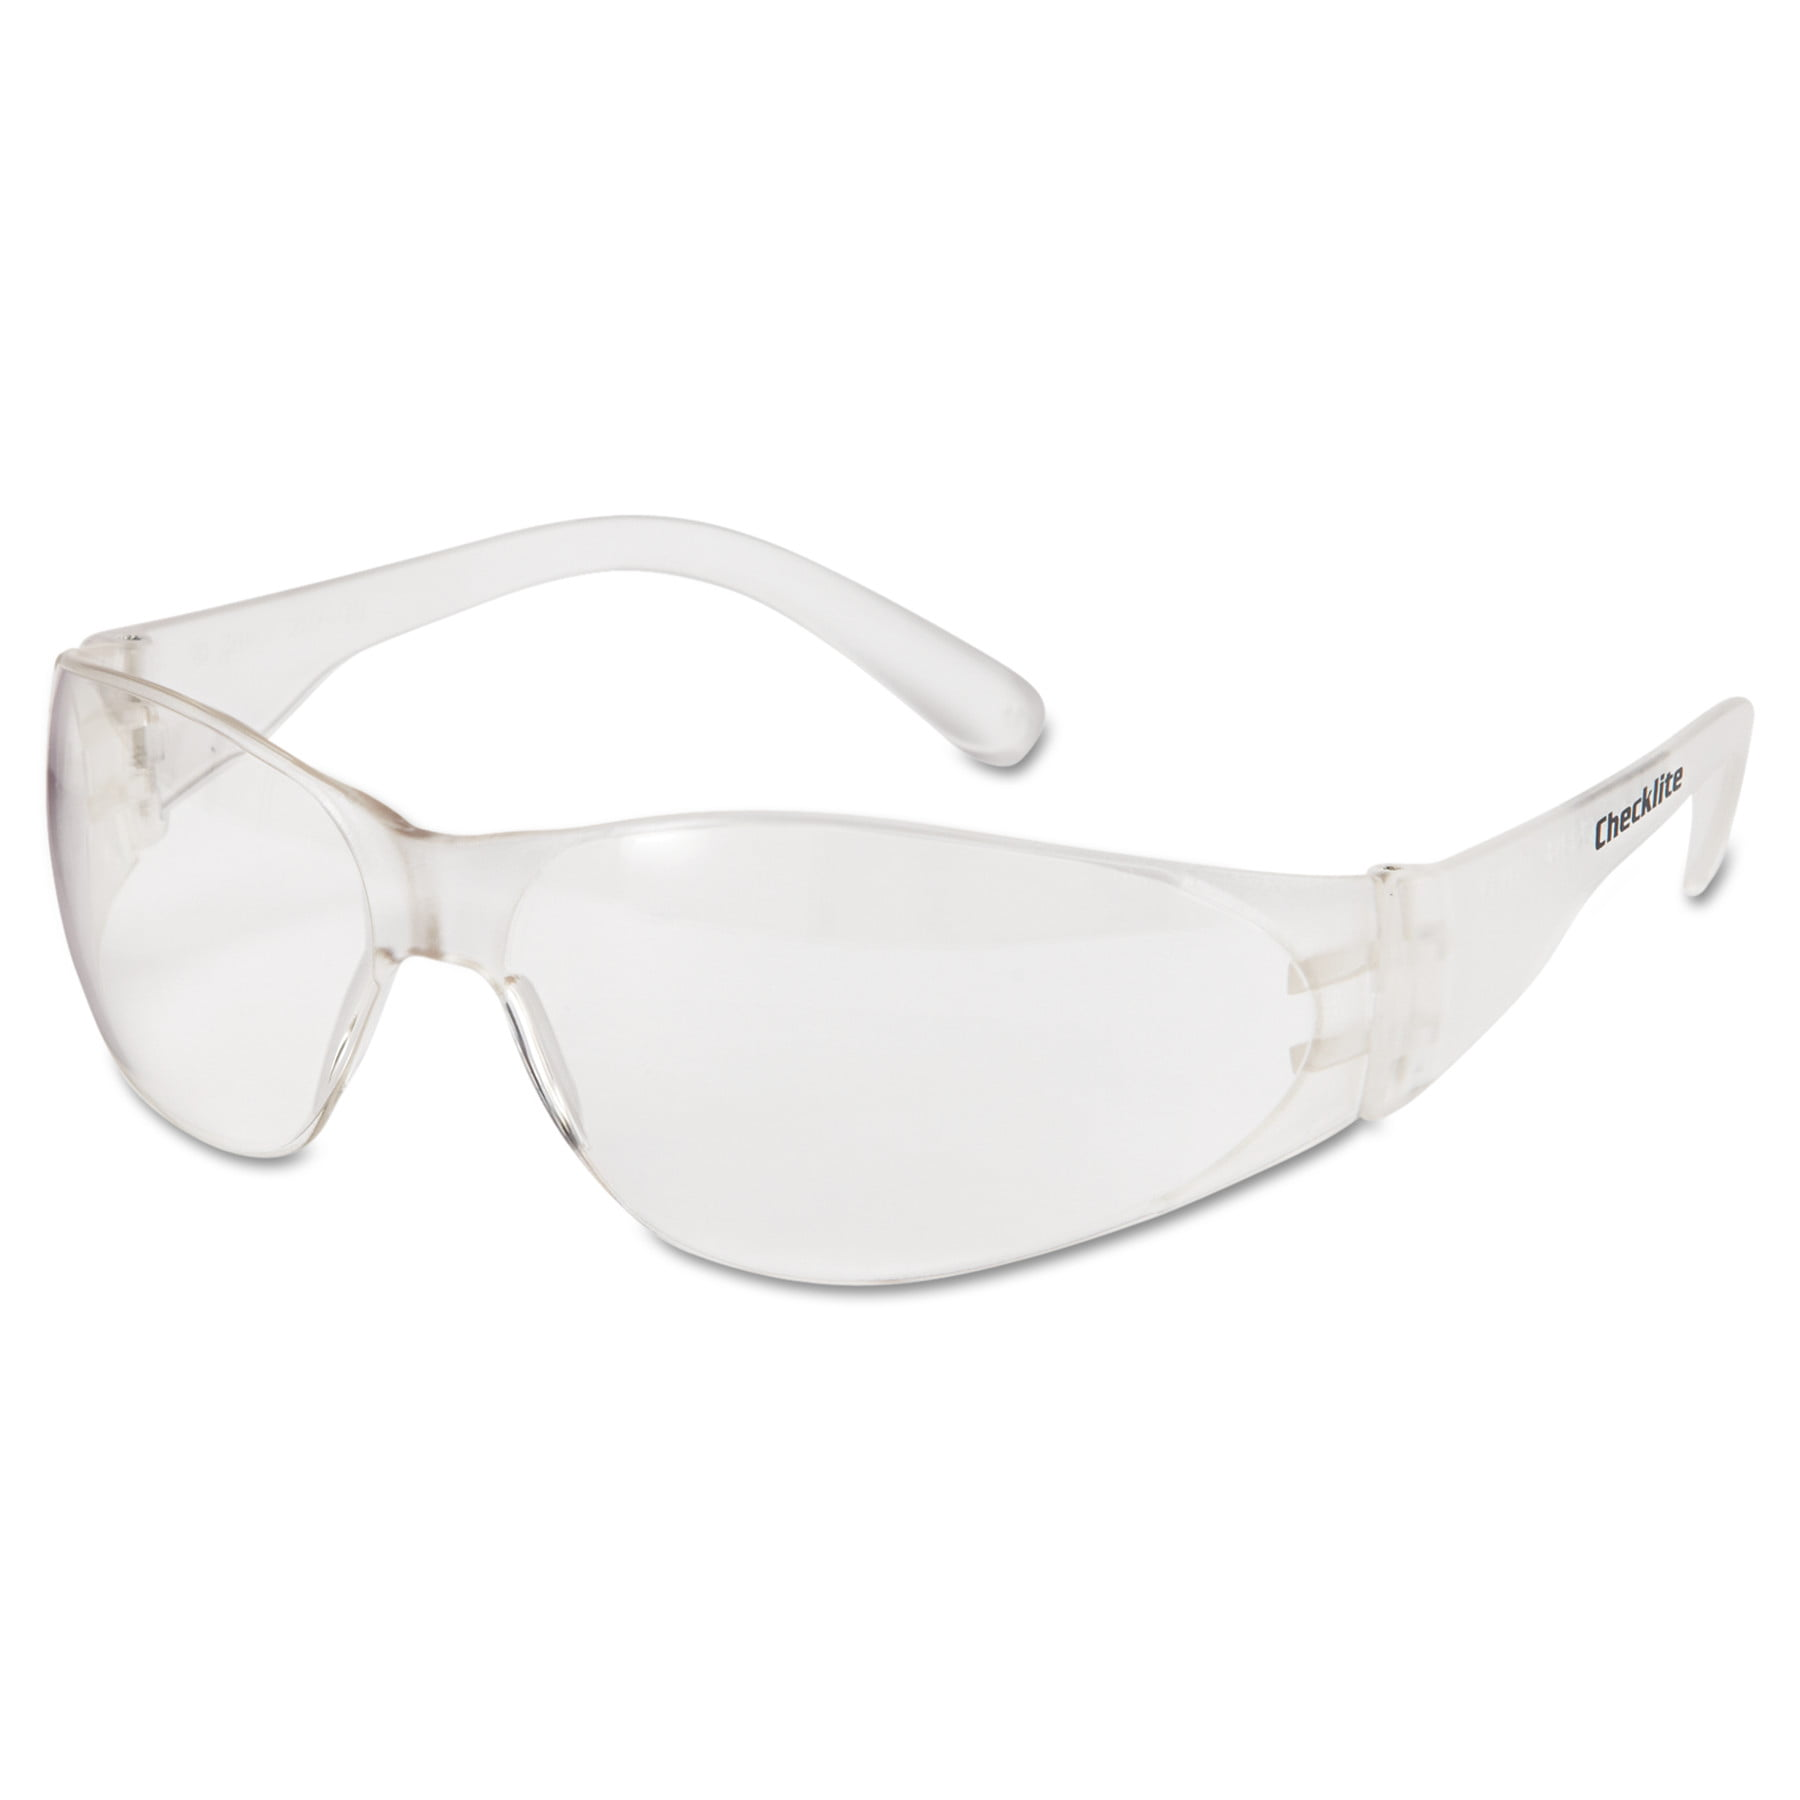 MCR Safety Checklite Safety Glasses, Clear Frame, Clear Lens by MCR SAFETY